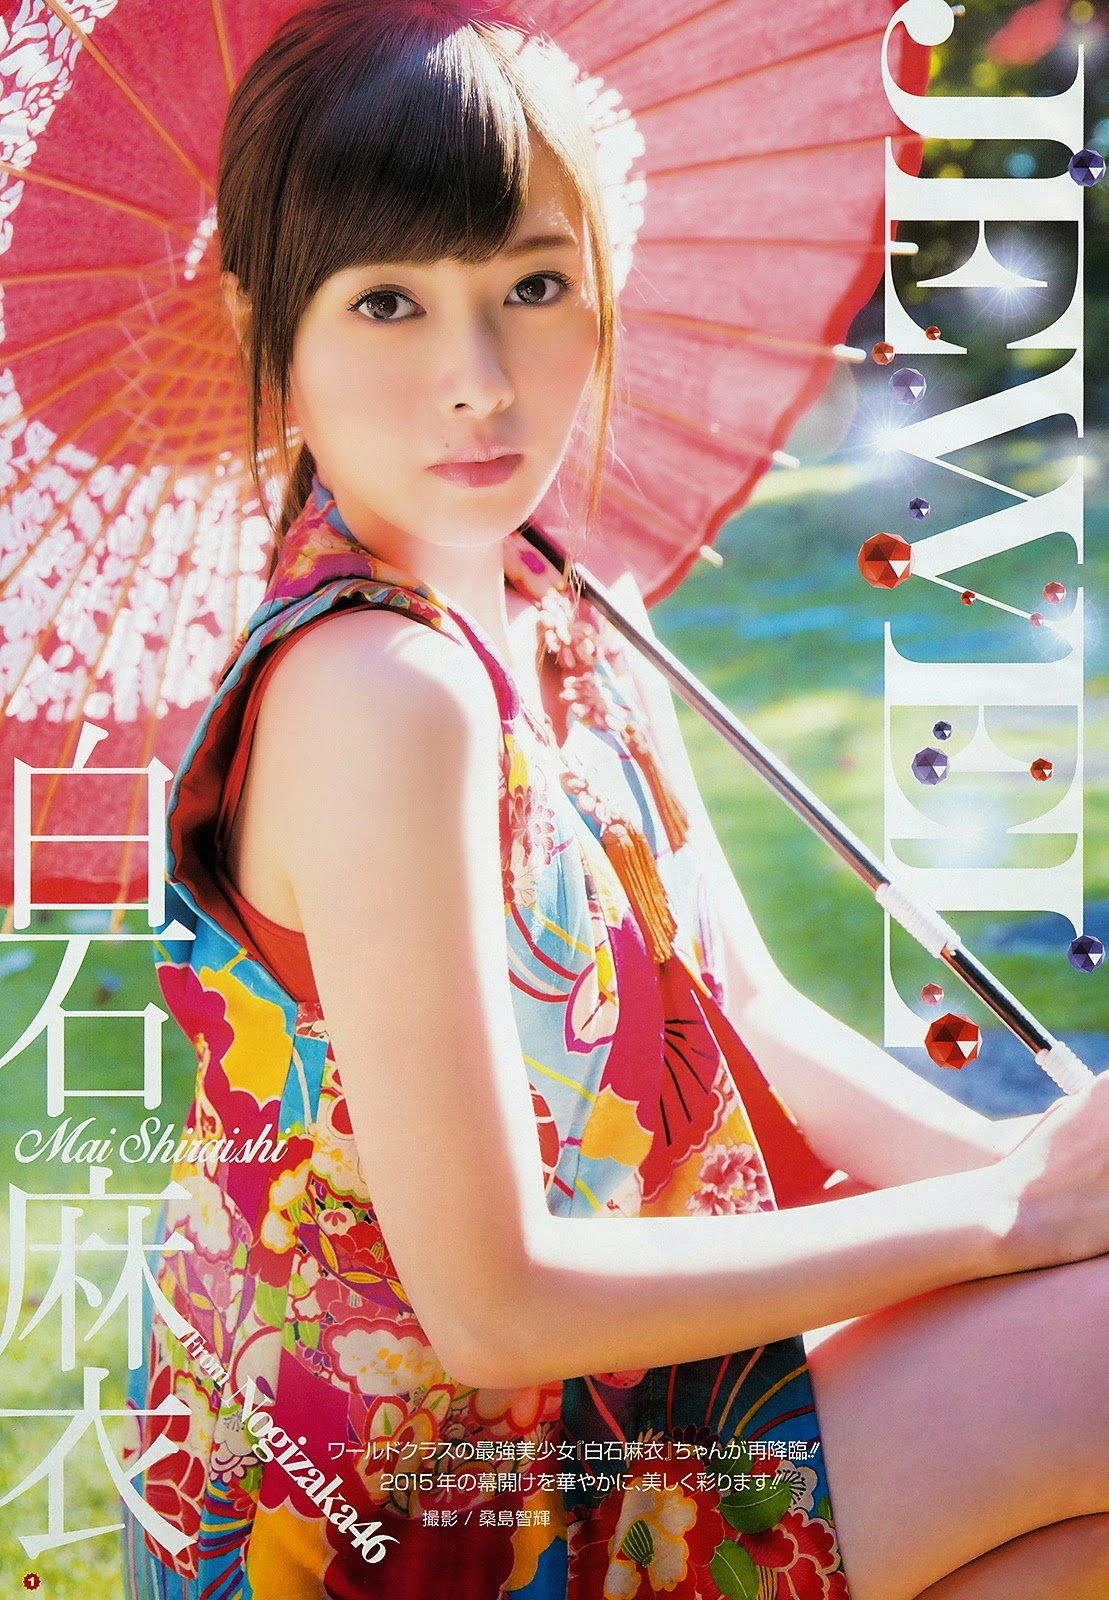 Mai Shiraishi 白石麻衣 JEWEL Images